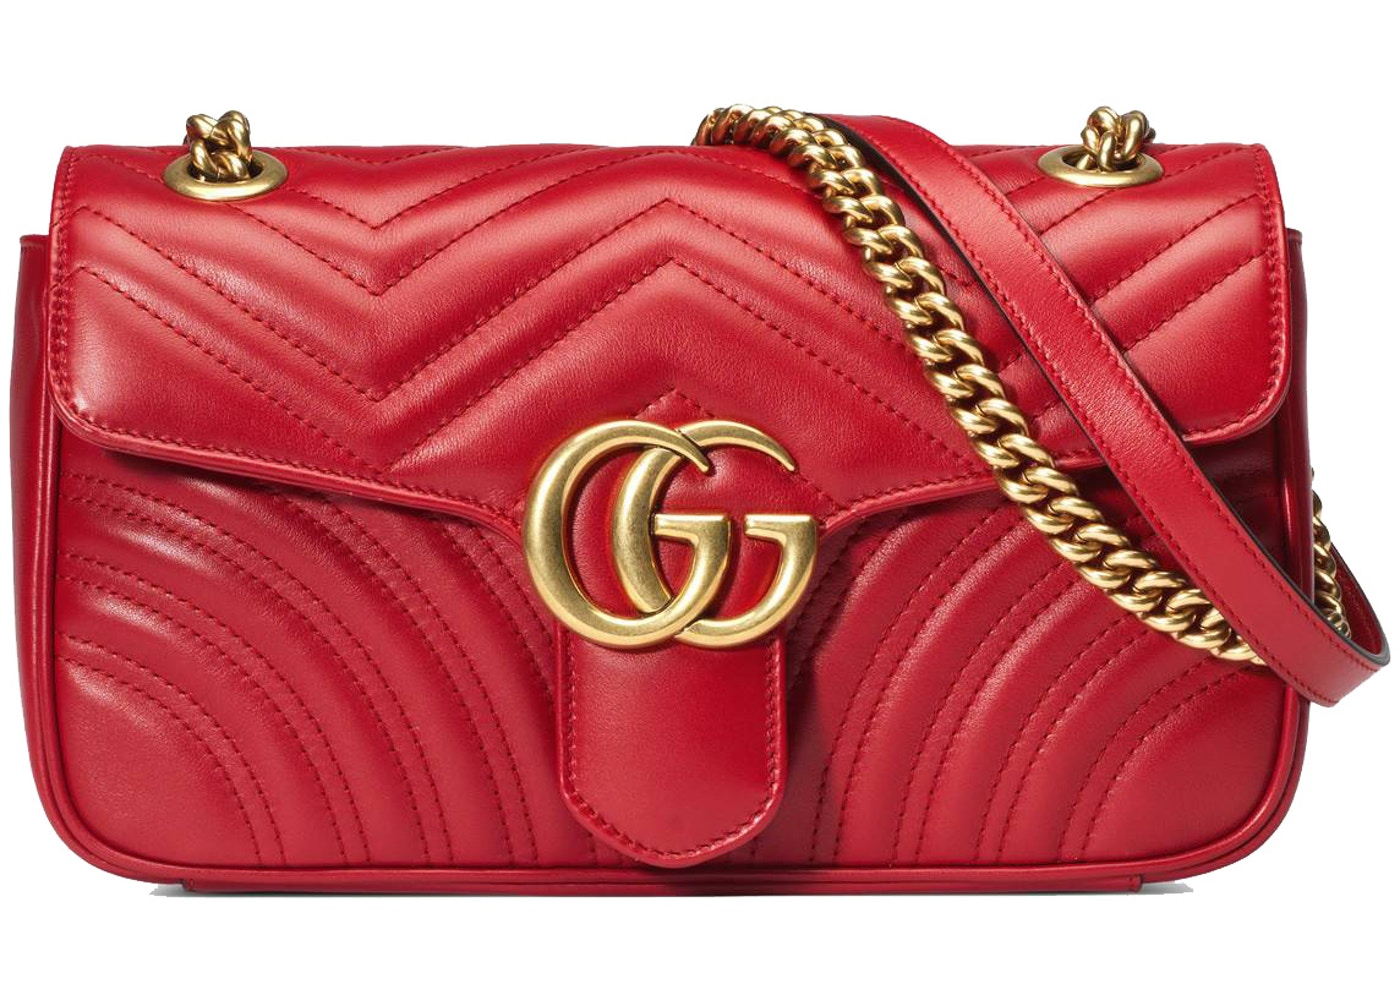 873fead549 Gucci GG Marmont Shoulder Bag Matelasse Small Hibiscus Red